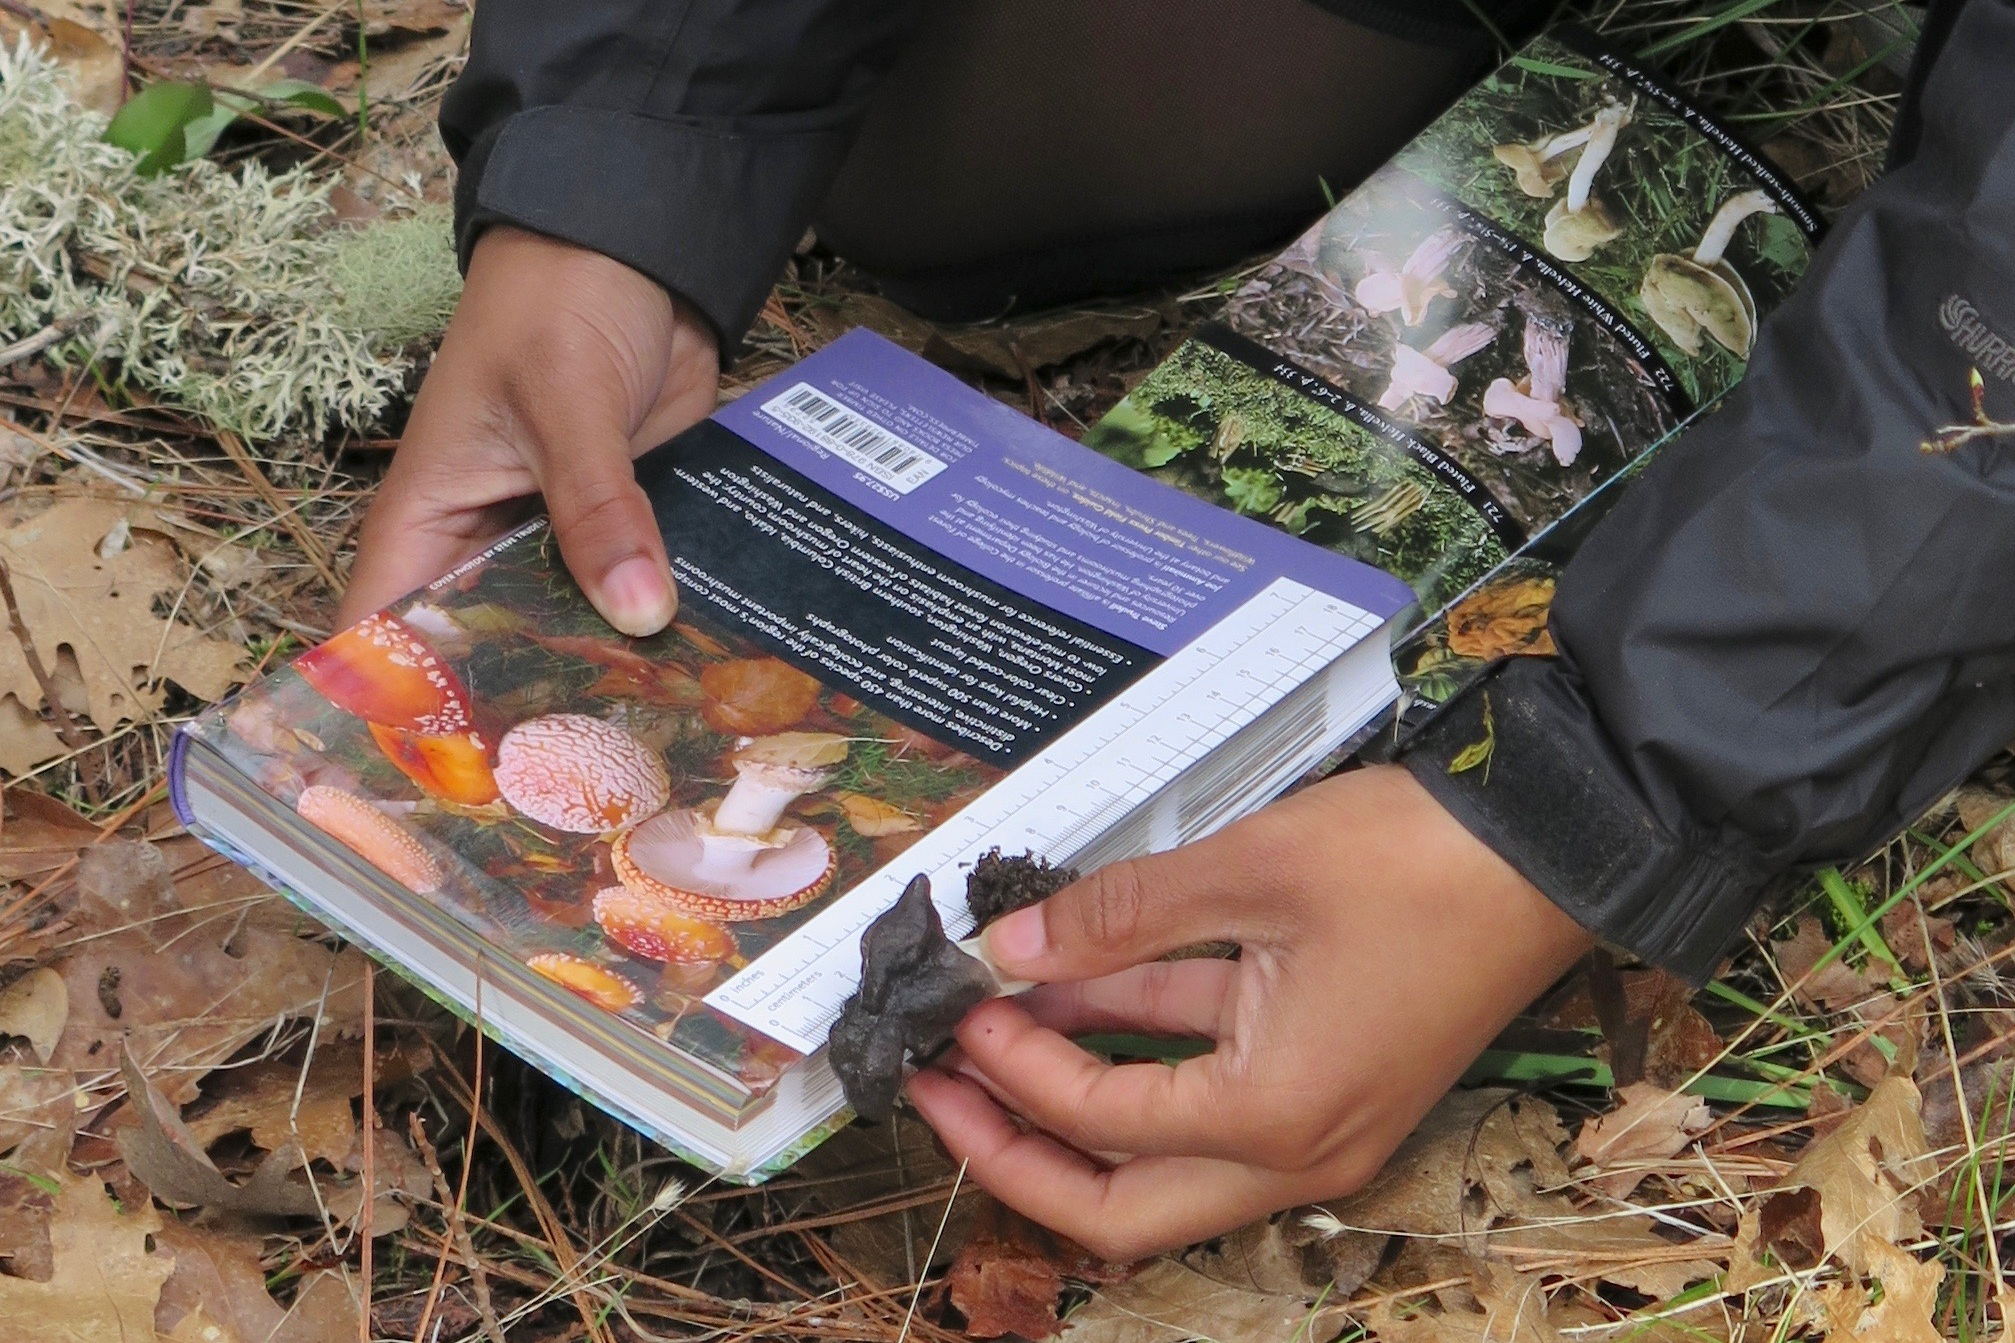 Bashira showing us how to use a fungi ID guide in the field.